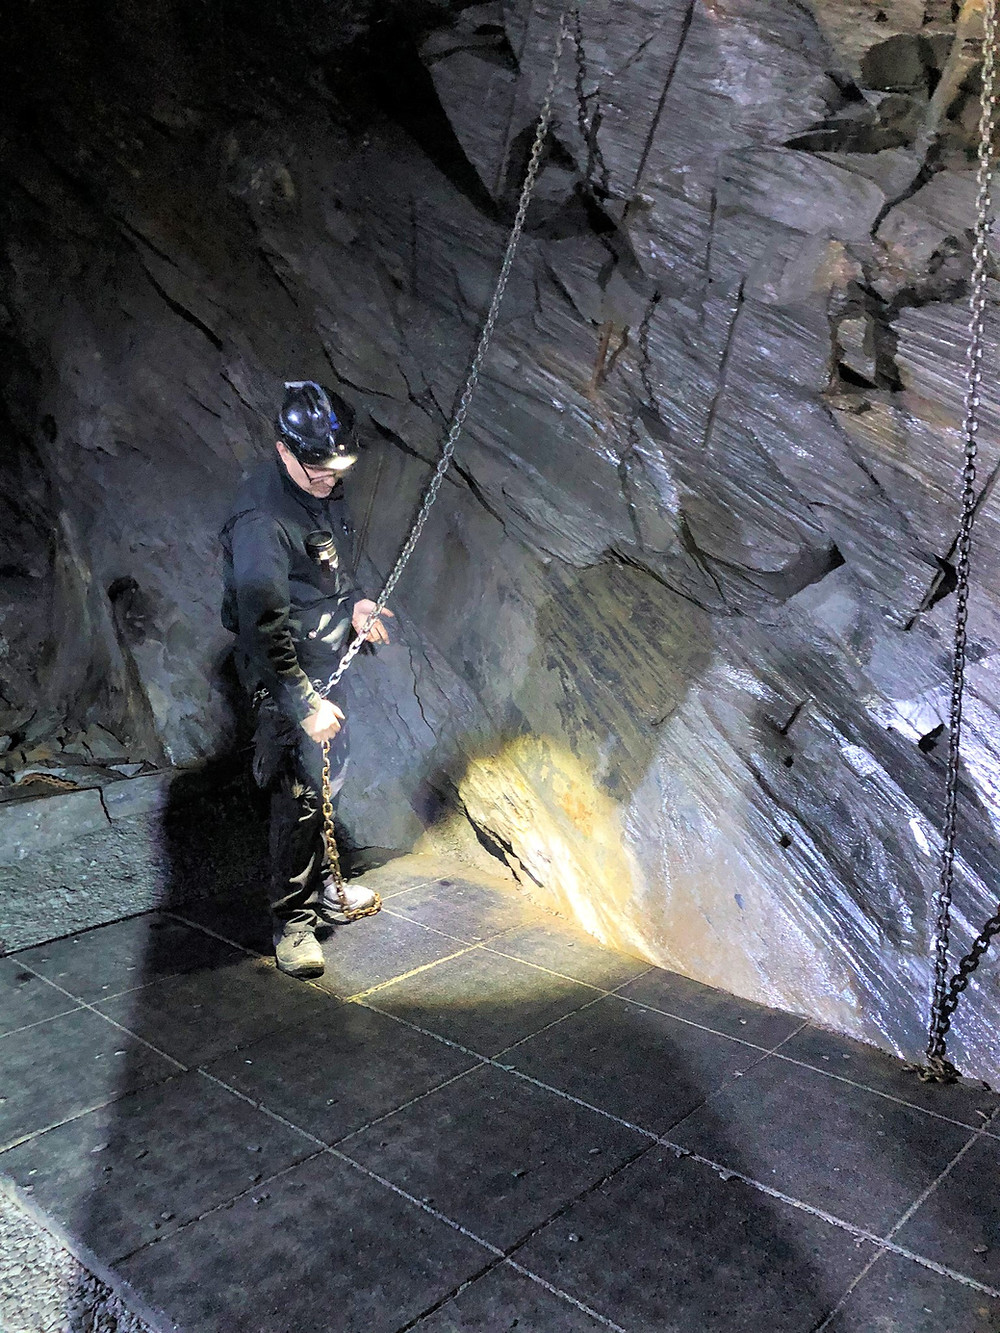 Guide demonstrating how workers used chains to secure themselves to slate chamber walls in Llechwedd Slate Quarry